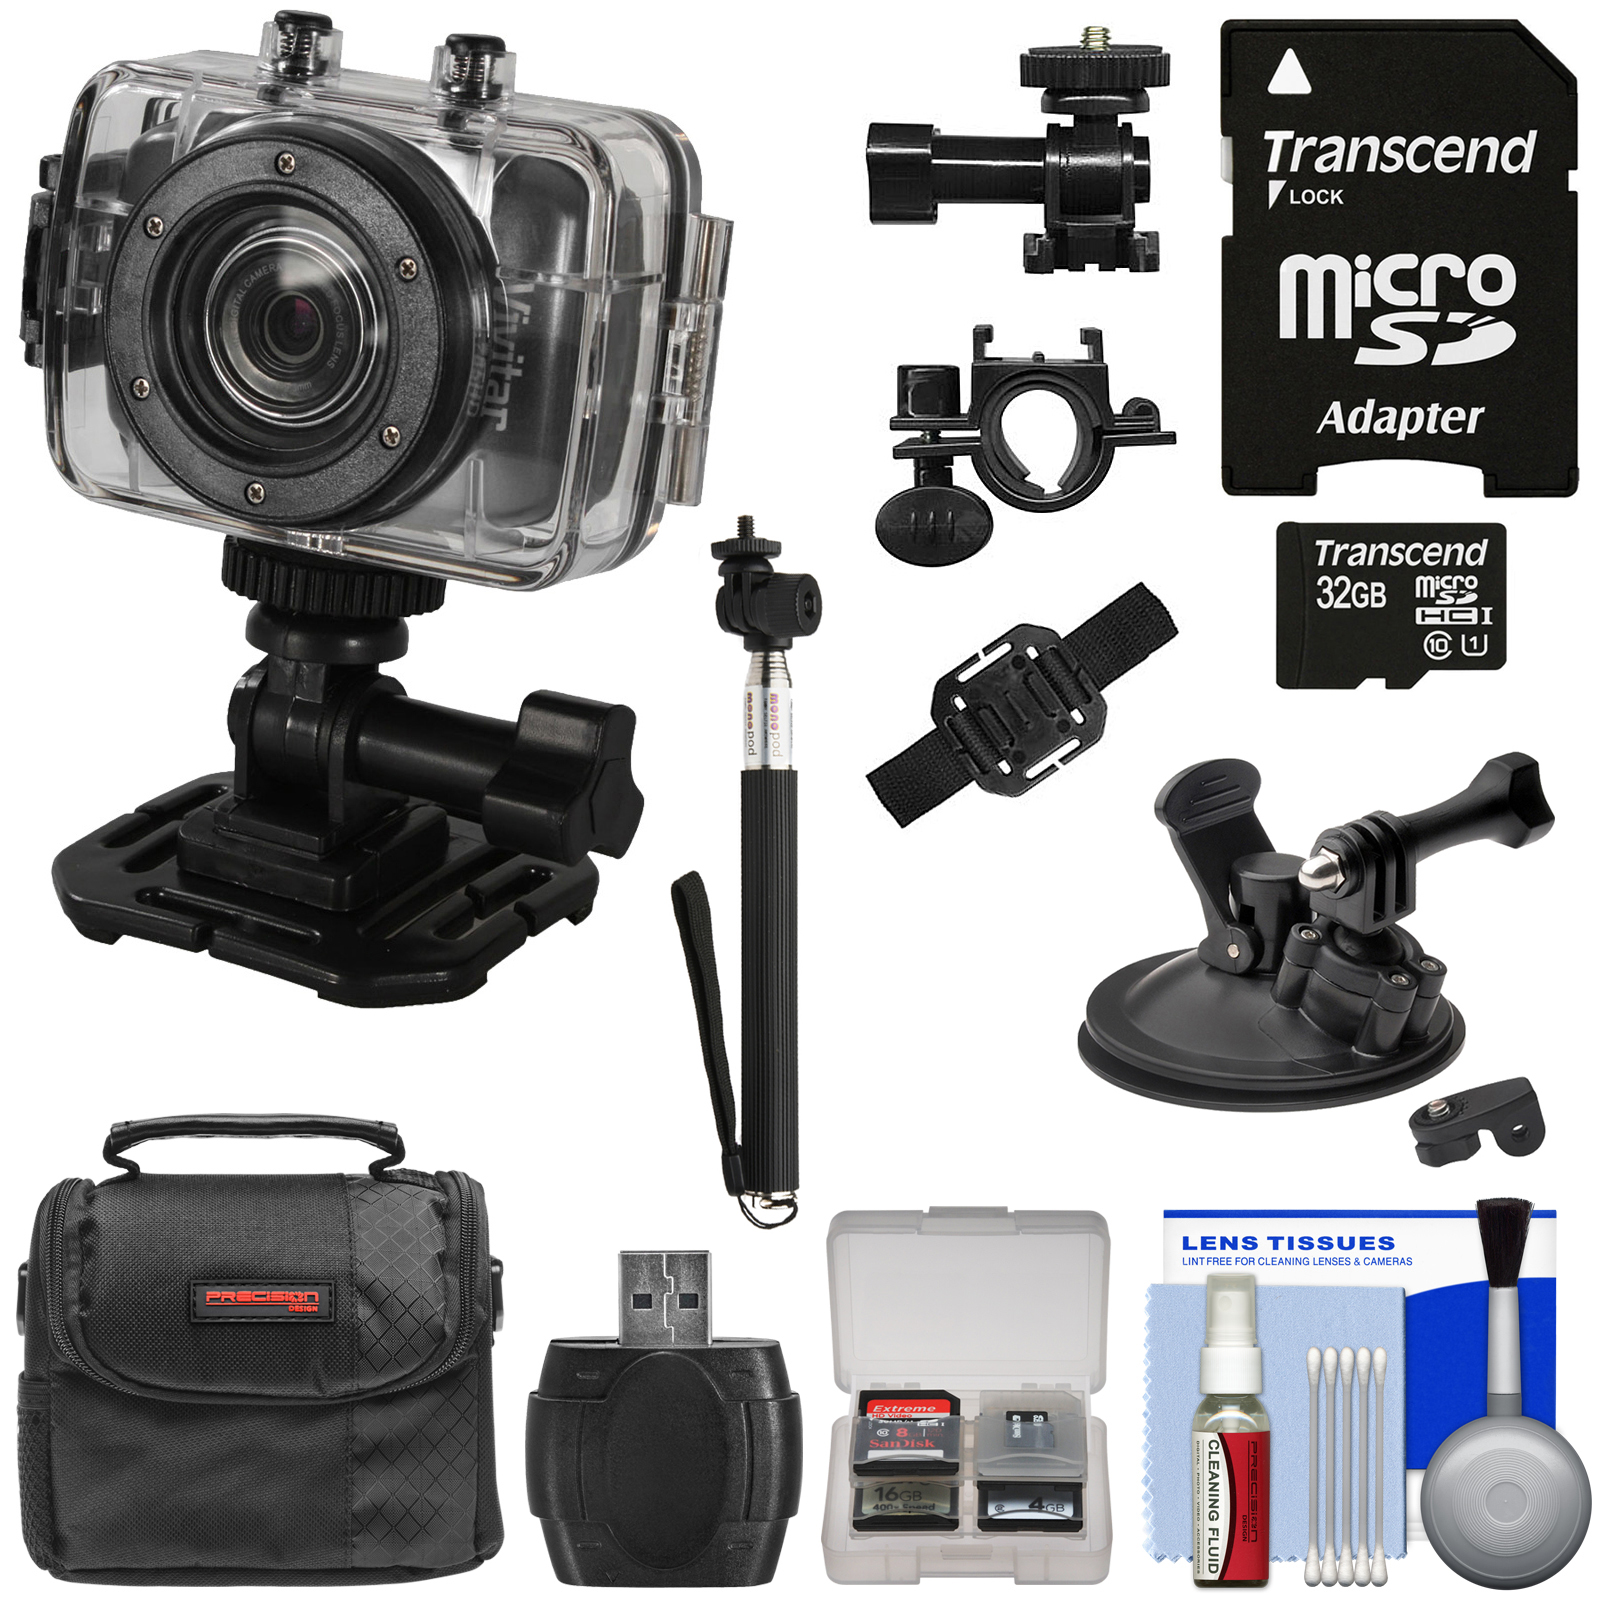 Vivitar DVR785HD Waterproof Action Video Camera Camcorder (Black) with Helmet\/Bike\/Car Mounts + 32GB Card + Case + Selfie Stick Kit